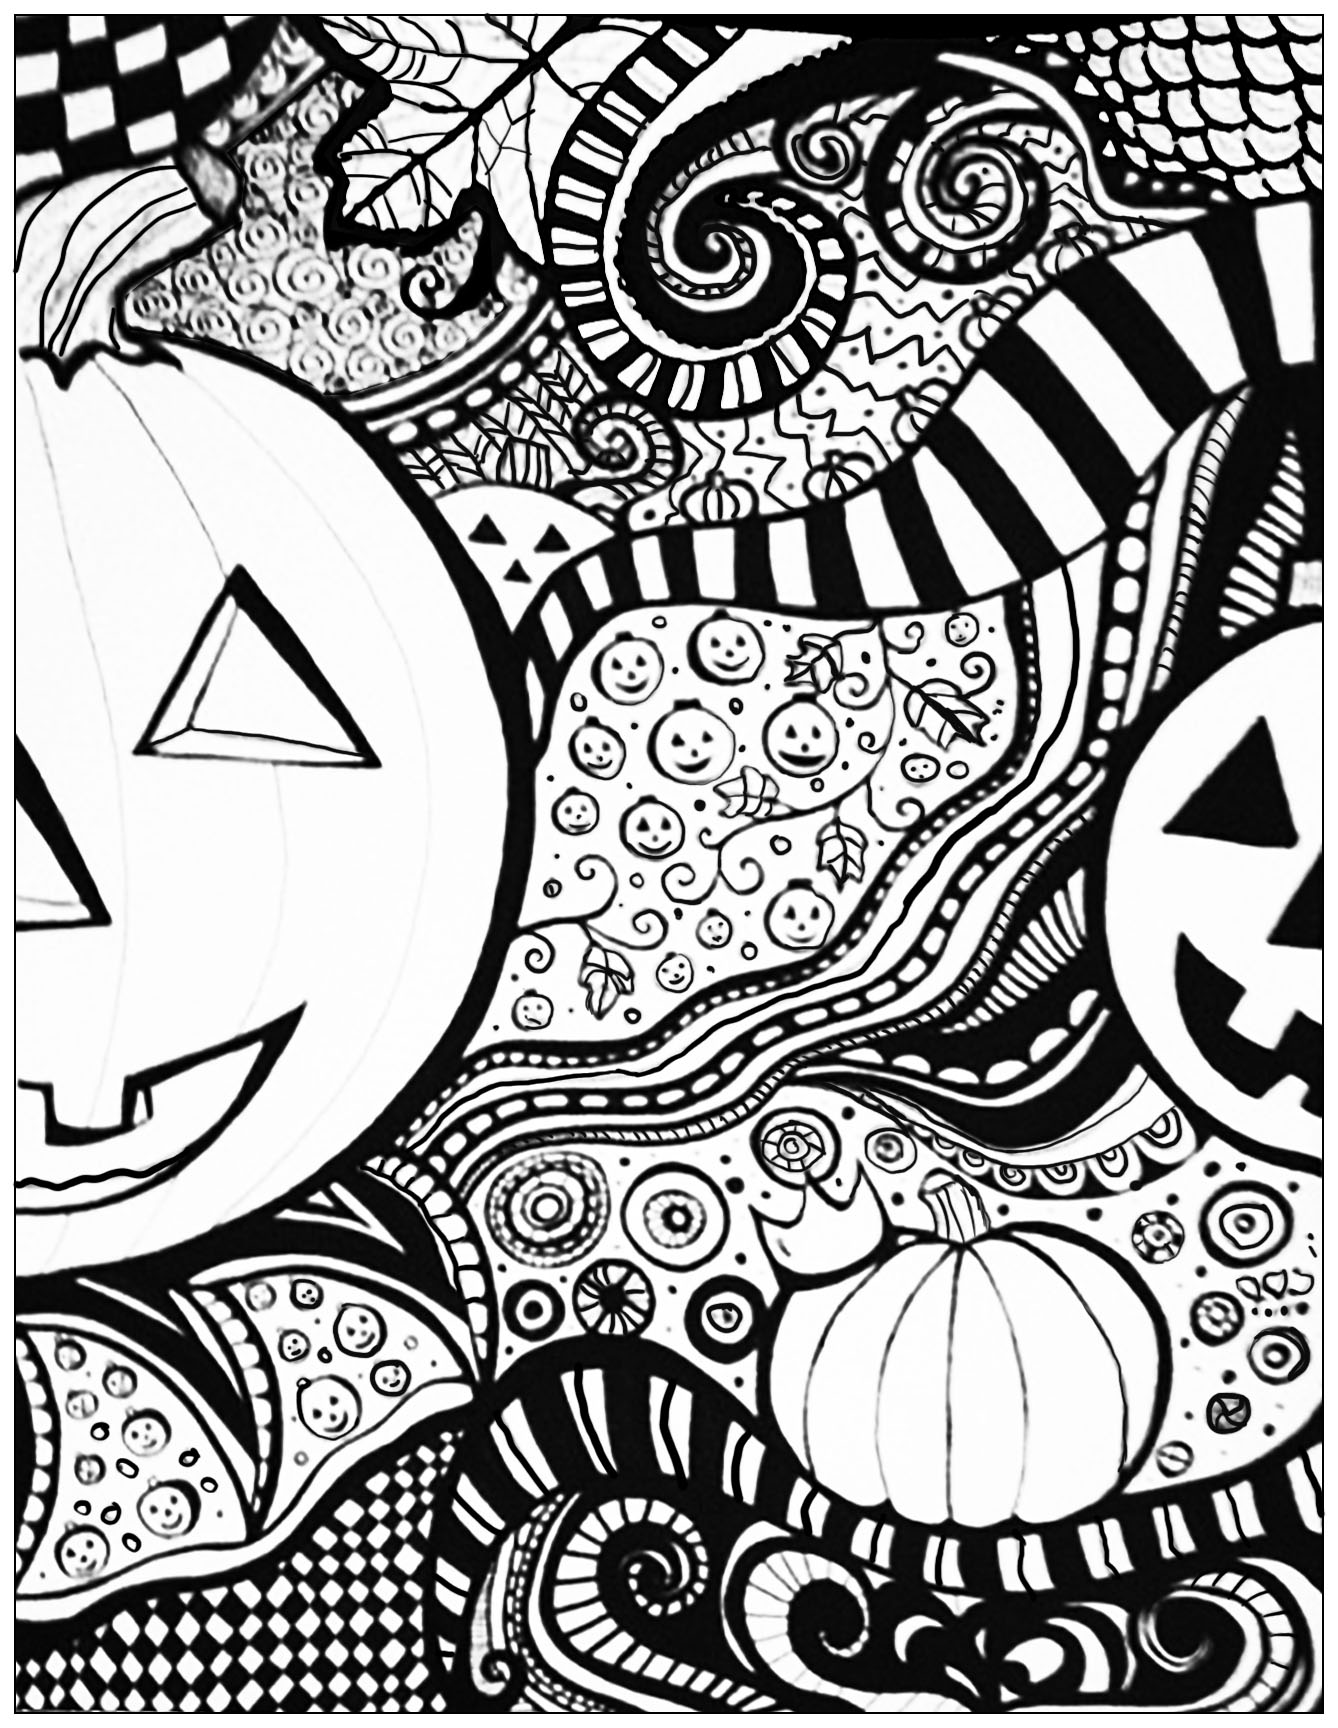 Disegni da colorare per adulti : Halloween - 12